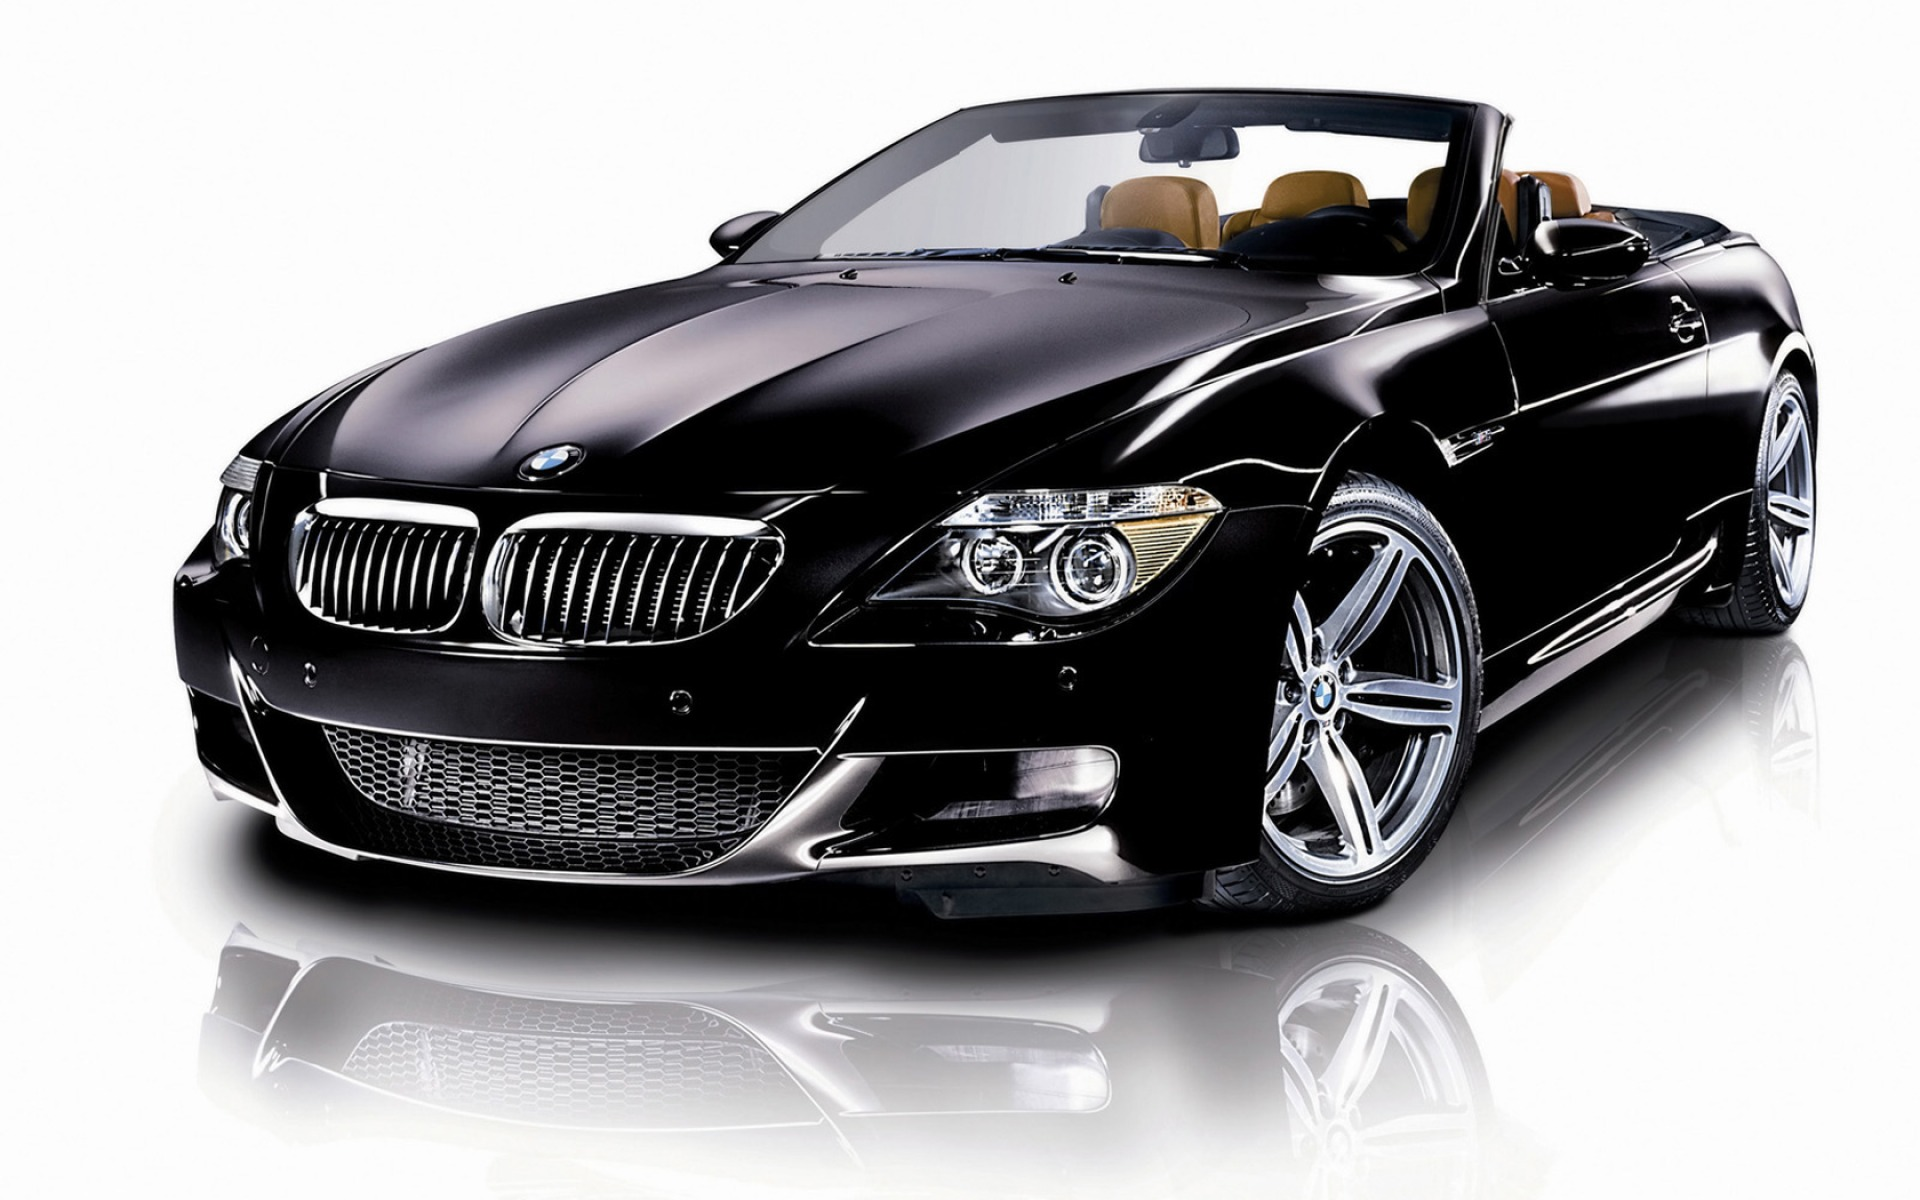 Ultrablogus  Splendid Bmw Car Wallpaper Wallpapers For Free Download About   With Glamorous Bmw M Convertible Wallpaper Bmw Cars With Delightful Daily Mail Interiors Also Mk Interior In Addition Interior Design Kilkenny And Interior Shots As Well As Scania Interior Accessories Additionally Scania Custom Interior From Allfreedownloadcom With Ultrablogus  Glamorous Bmw Car Wallpaper Wallpapers For Free Download About   With Delightful Bmw M Convertible Wallpaper Bmw Cars And Splendid Daily Mail Interiors Also Mk Interior In Addition Interior Design Kilkenny From Allfreedownloadcom